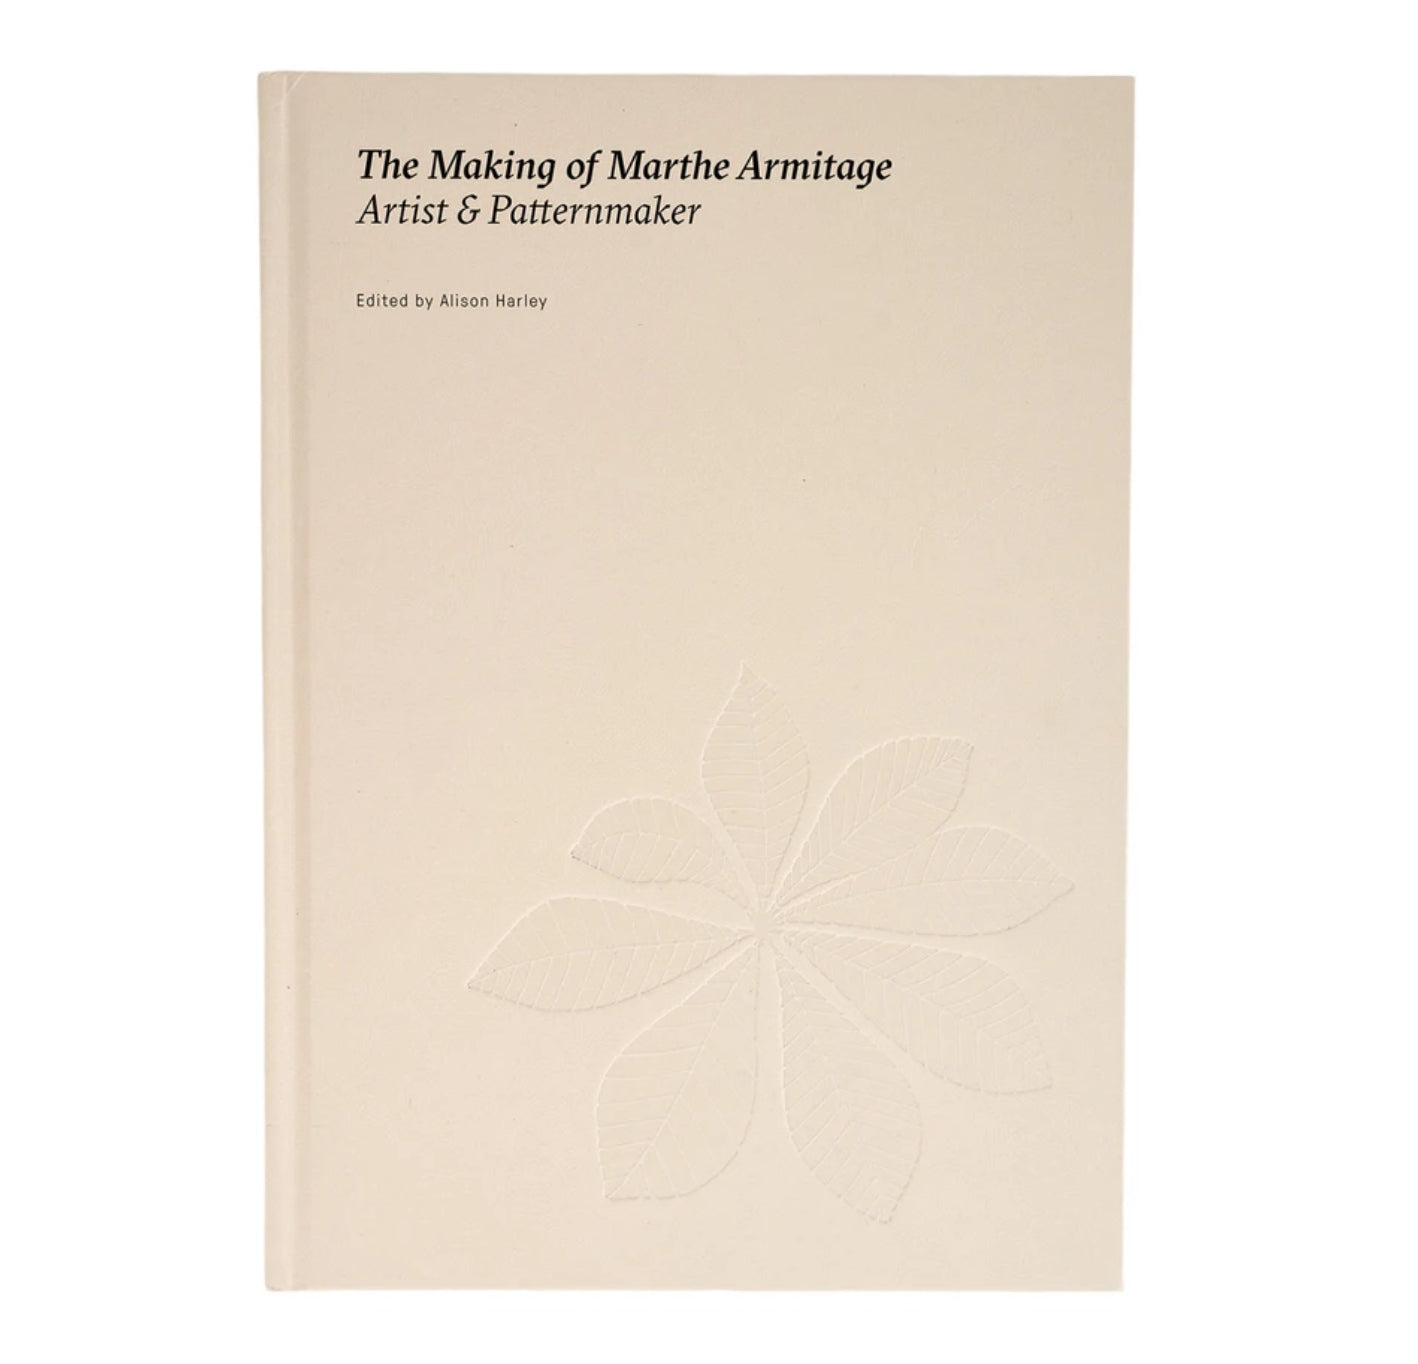 The Making Of Marthe Armitage - Artist & Patternmaker